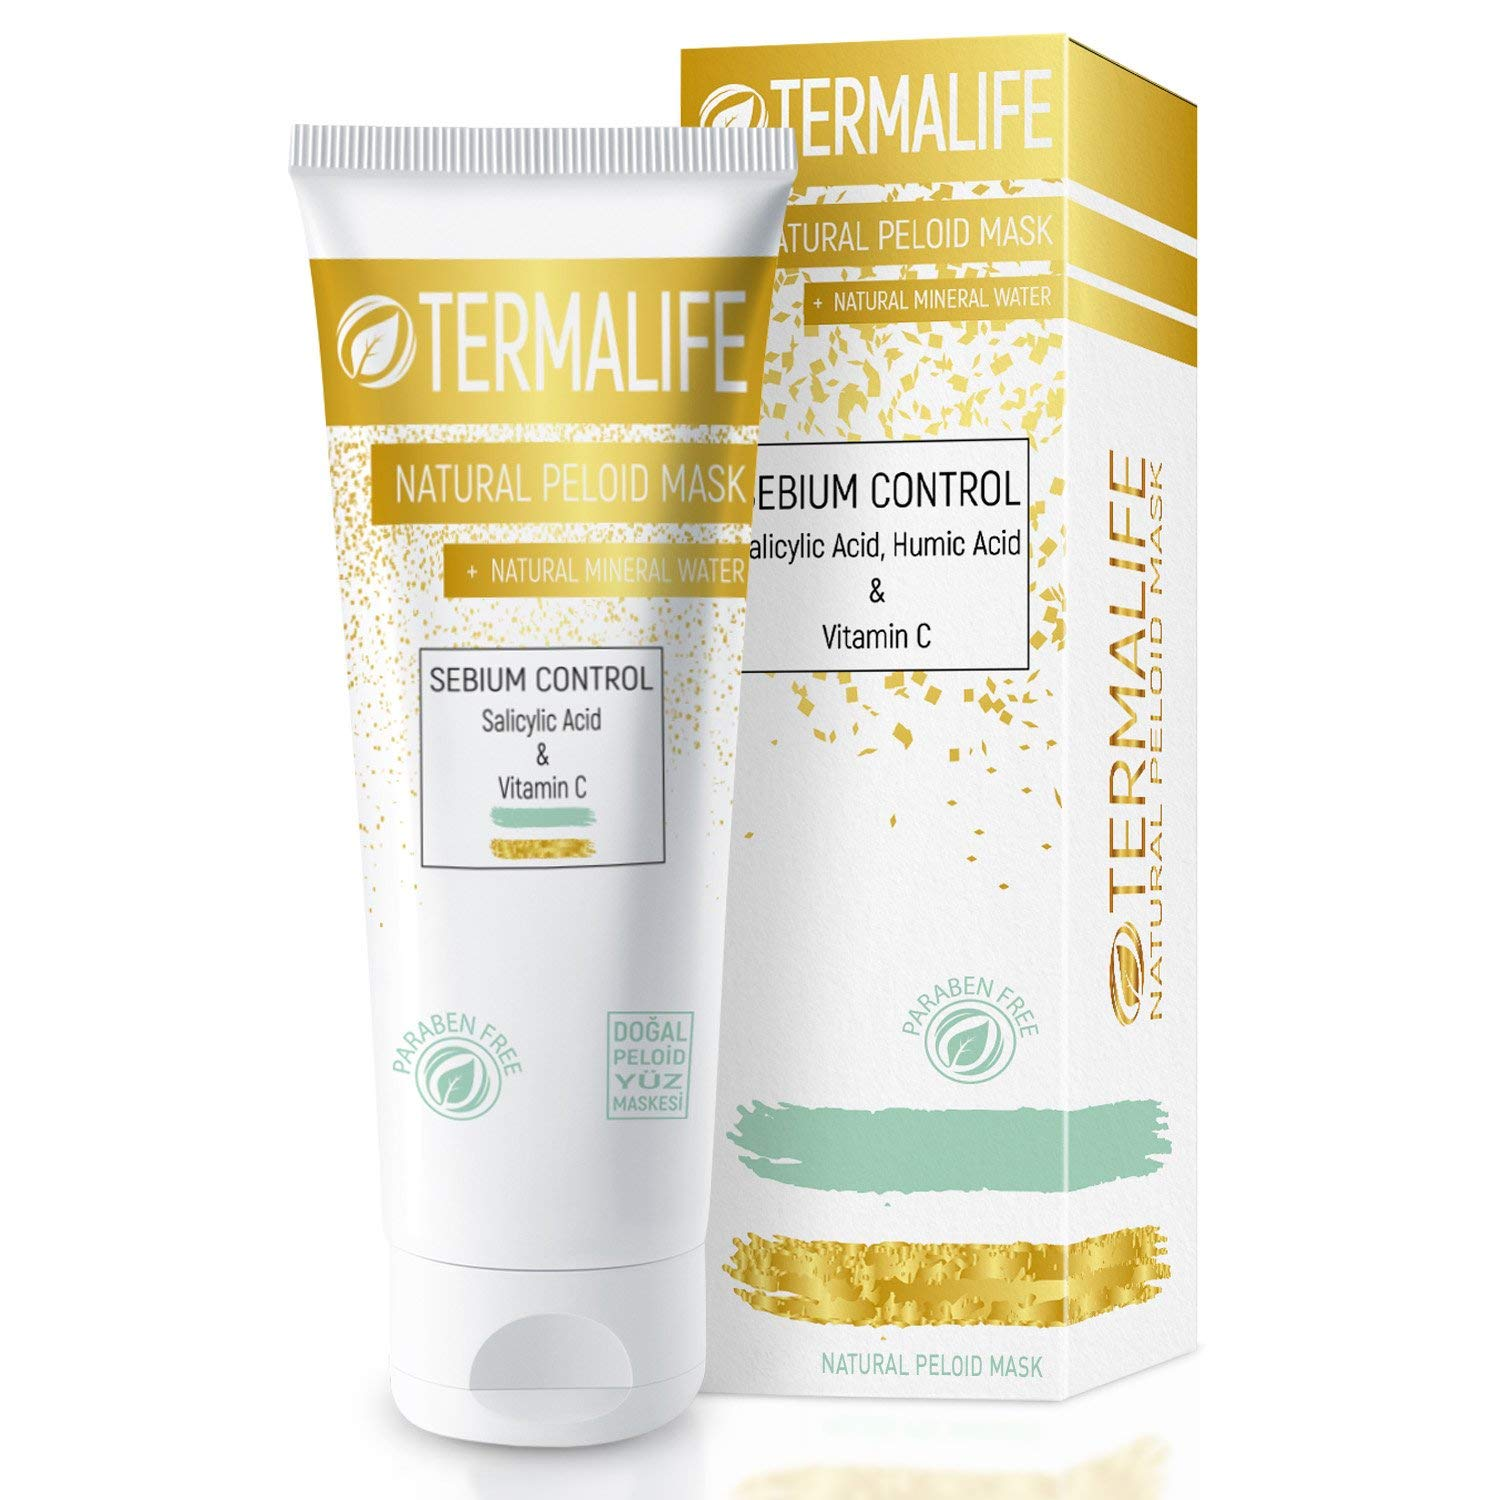 Termalife Peloid Face Mask | 5.1 oz Natural Facial Mask For Deep Pore Cleansing | Treatment of Acne, Best Facial Pore Minimizer, Reduce Wrinkles, Natural Cleaning and Nourishing Face (Oily Skins)